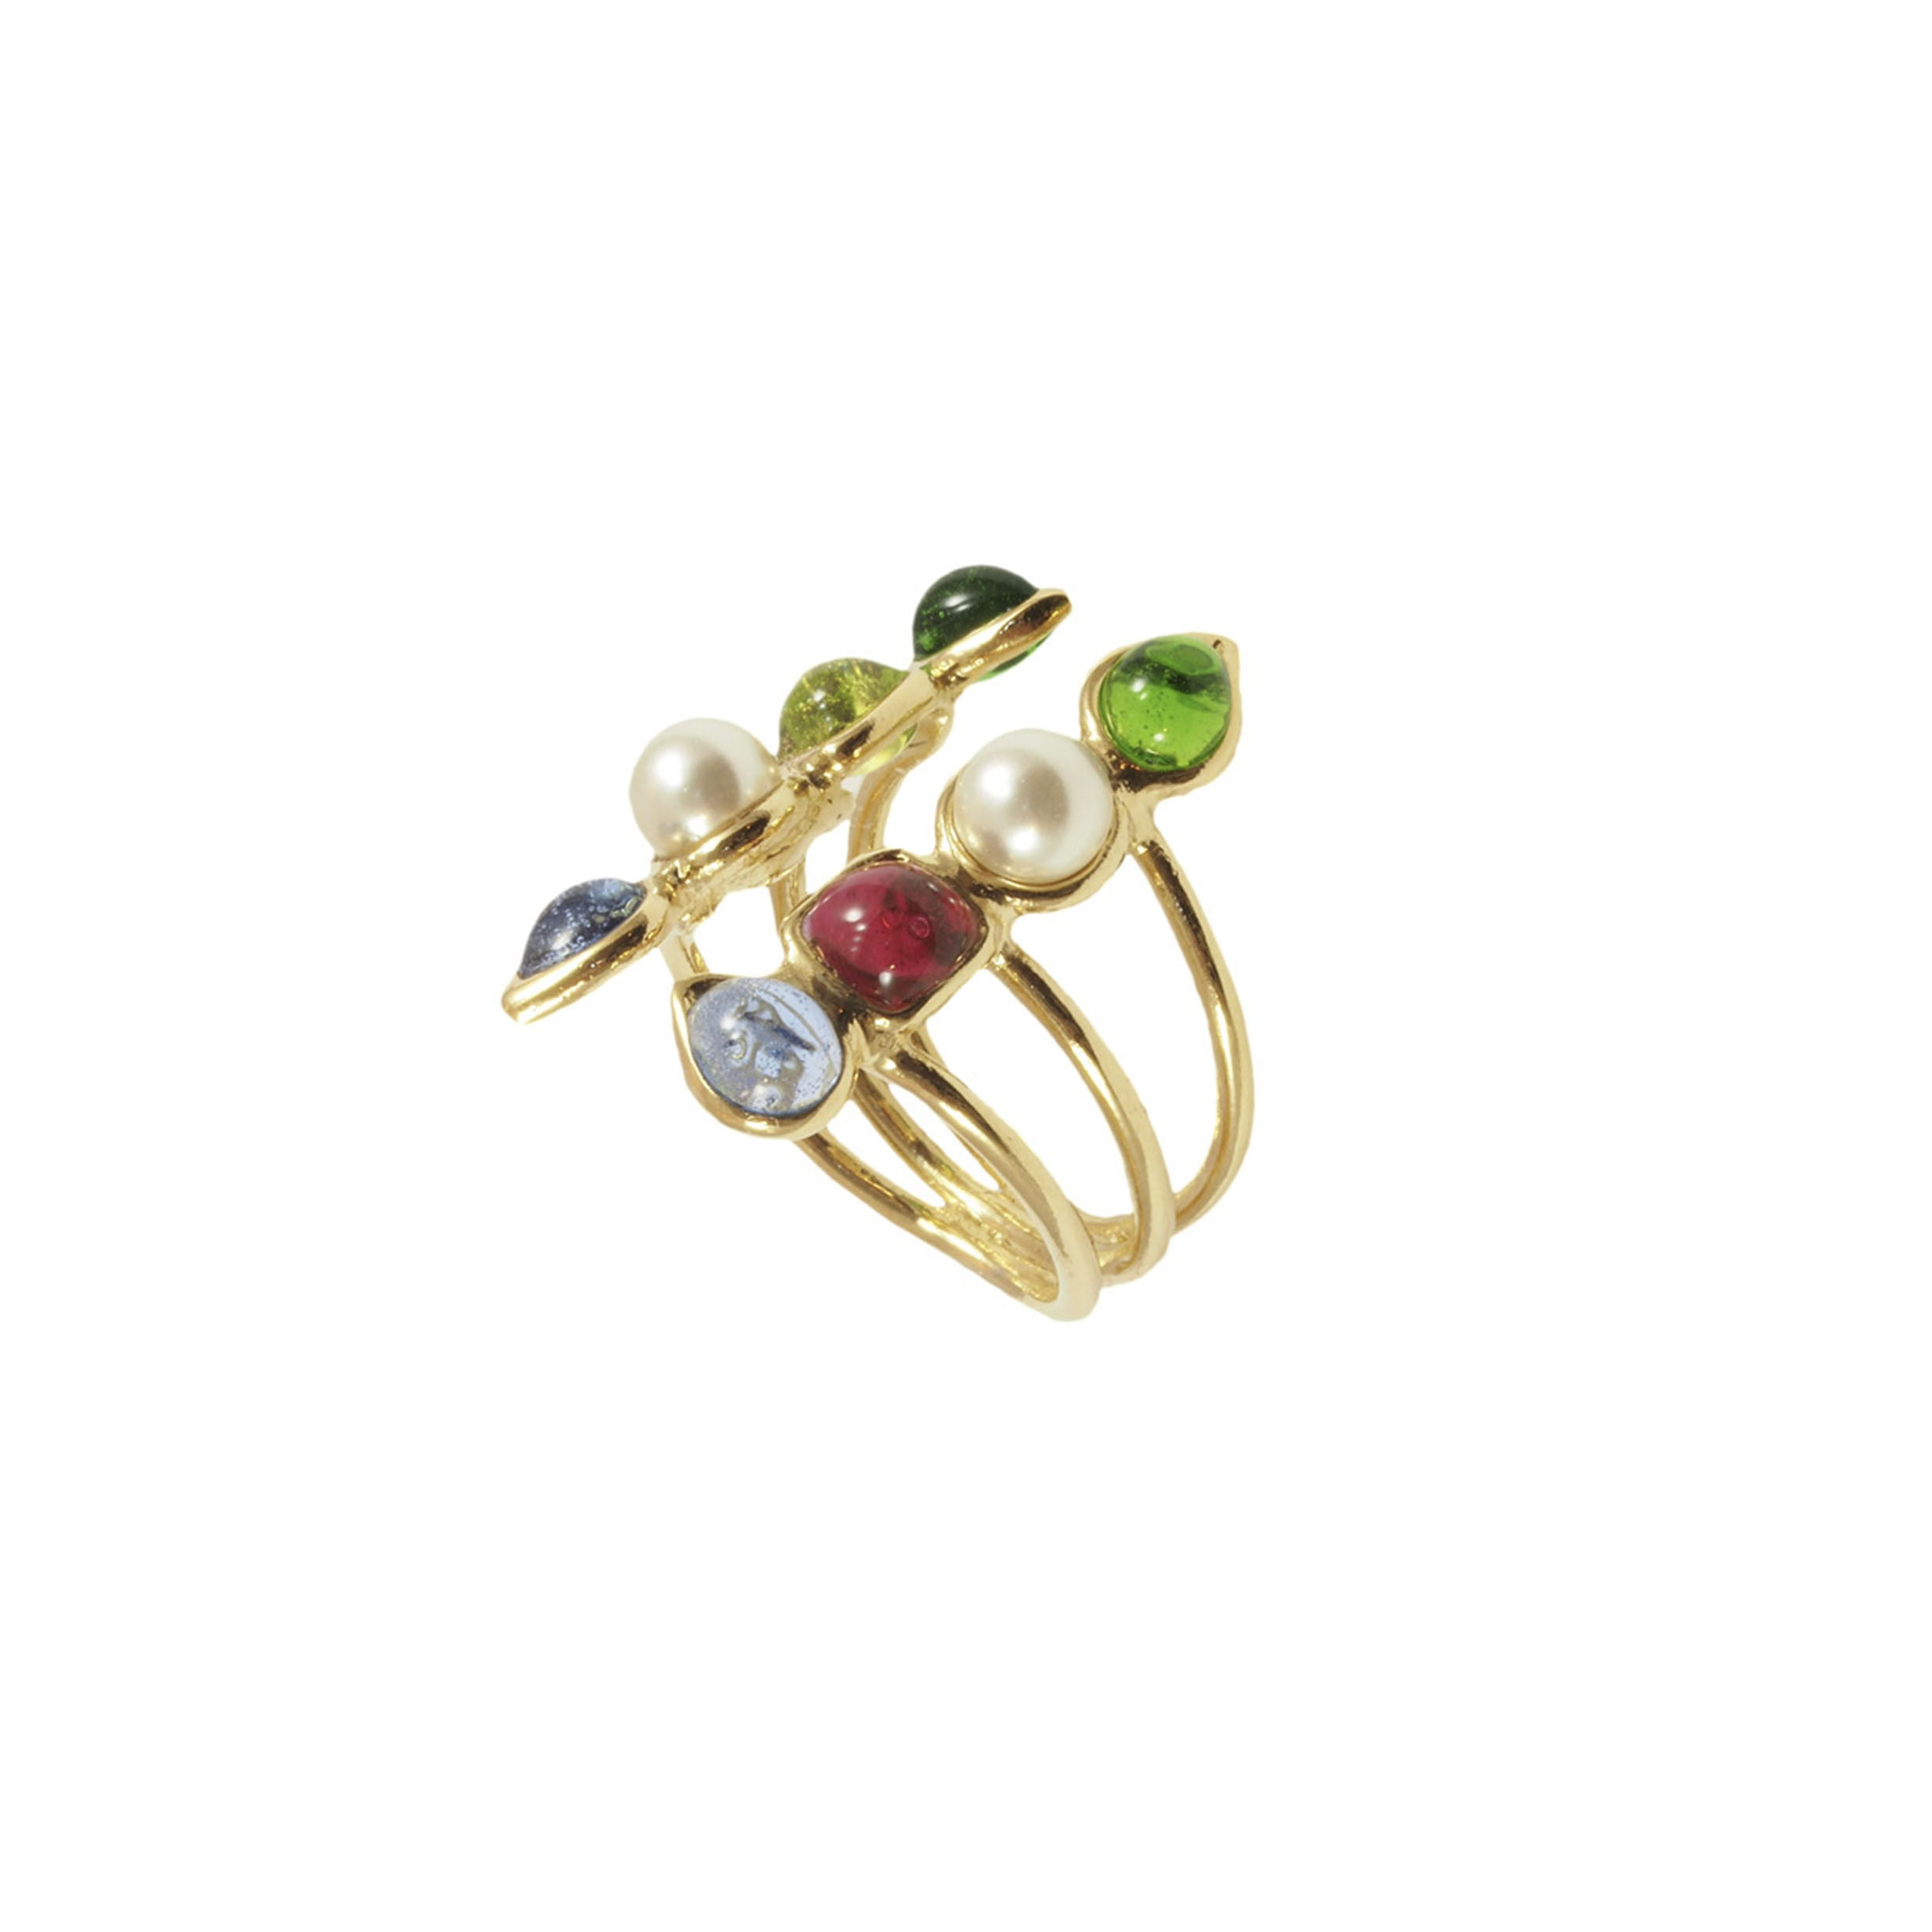 Double Geometrical Shape Adjustable Ring with pearls